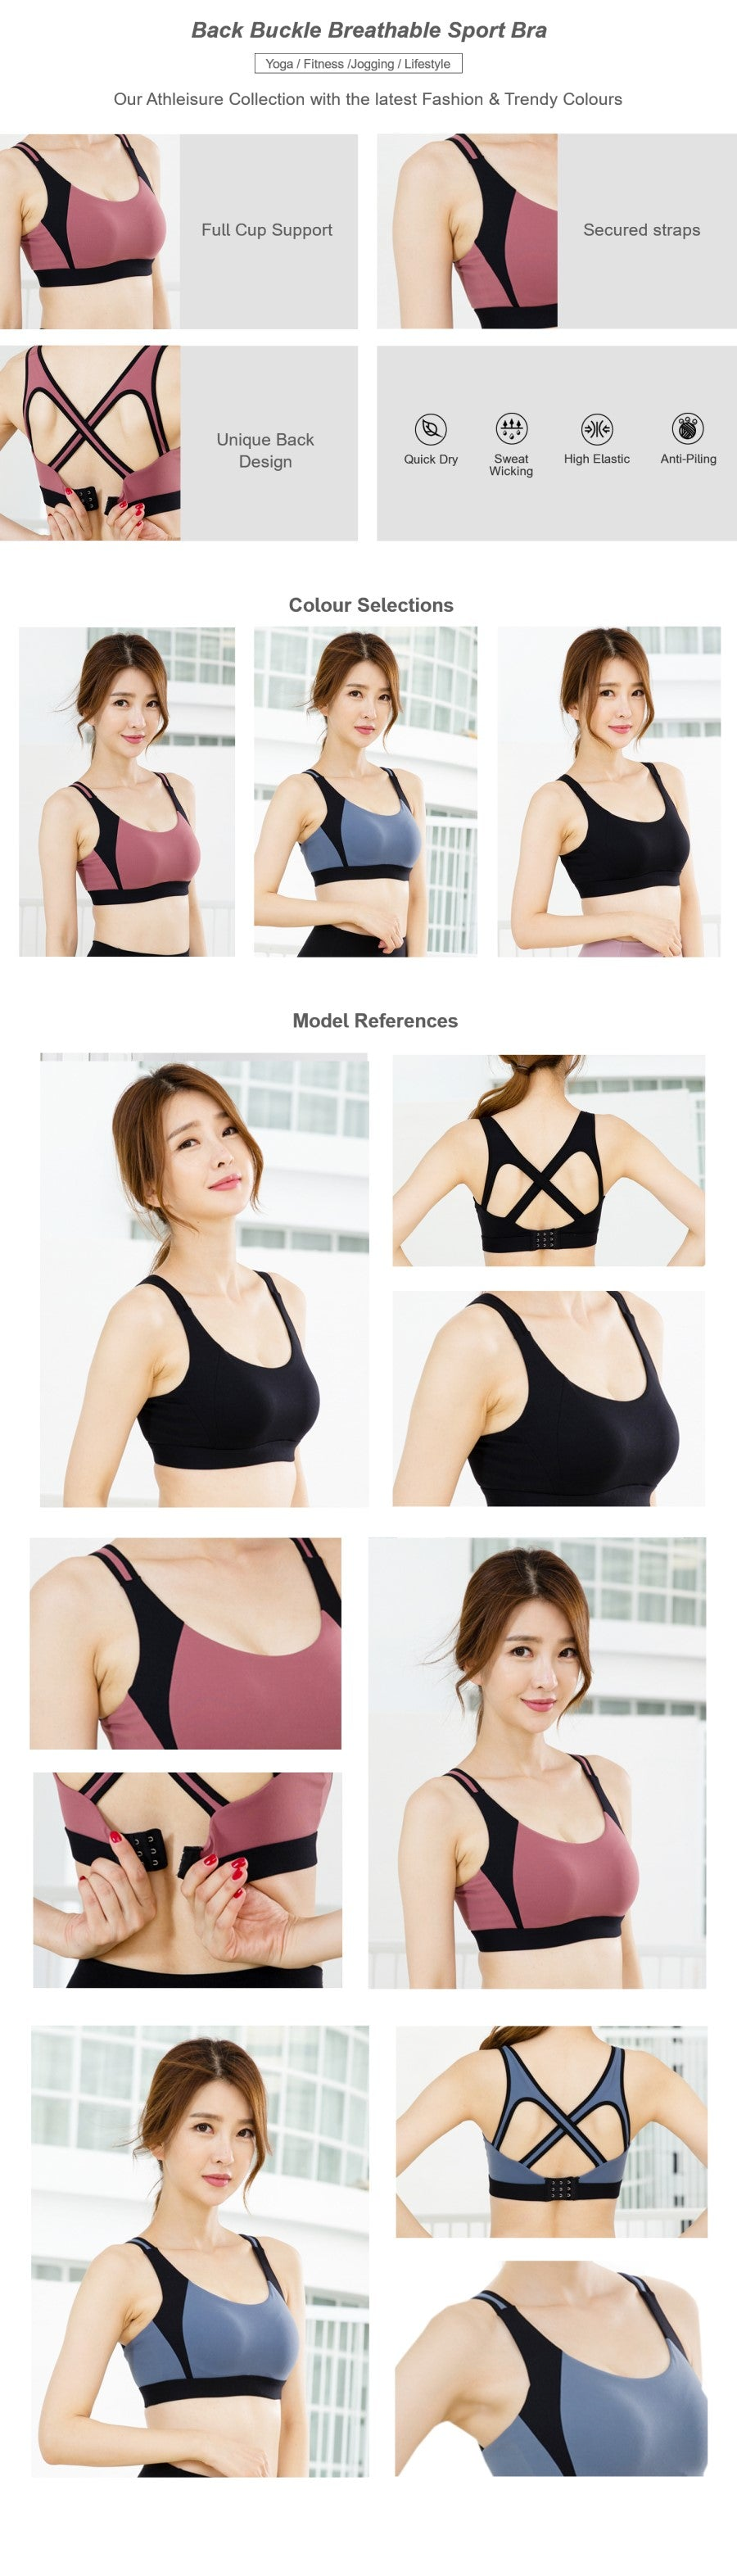 Cross Back Breathable Sport Bra